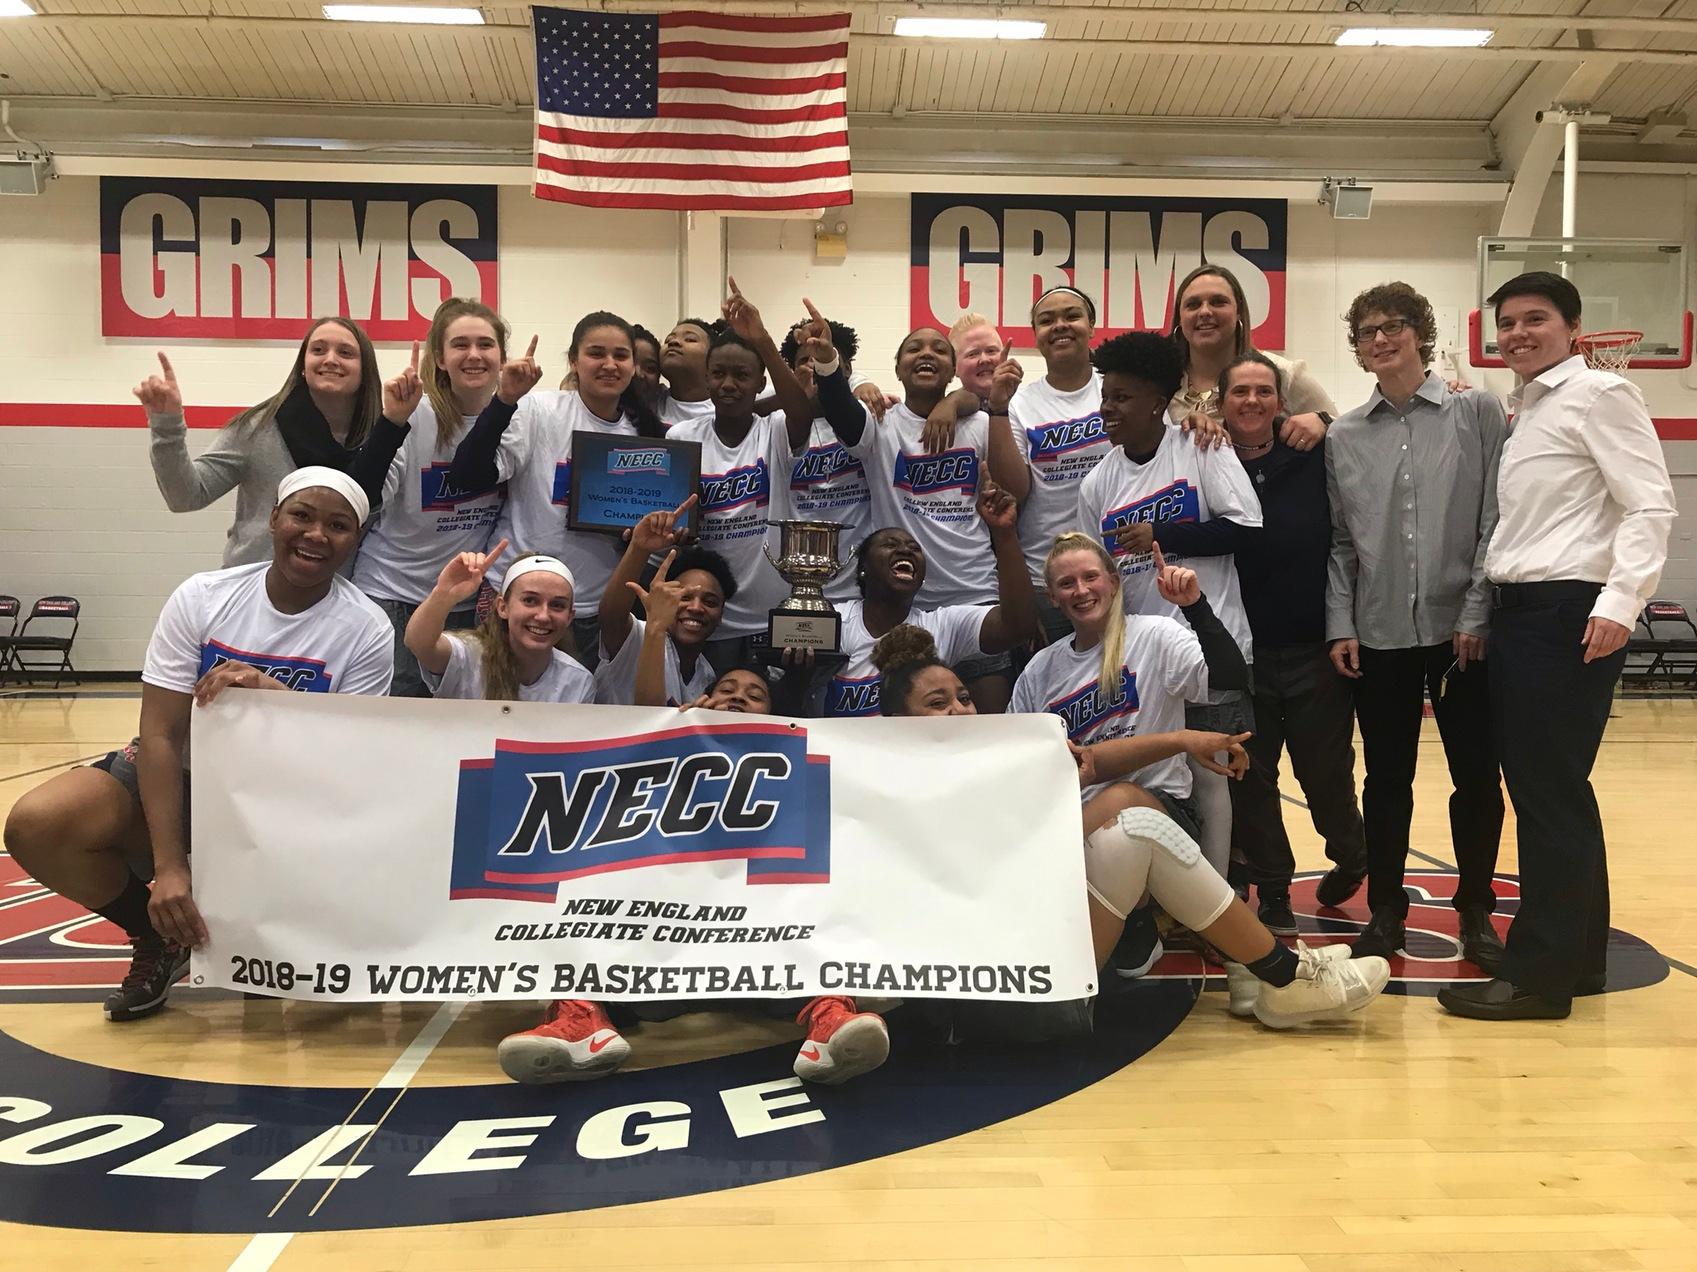 New England College Tops Becker to Capture 2018-19 Women's Basketball Title